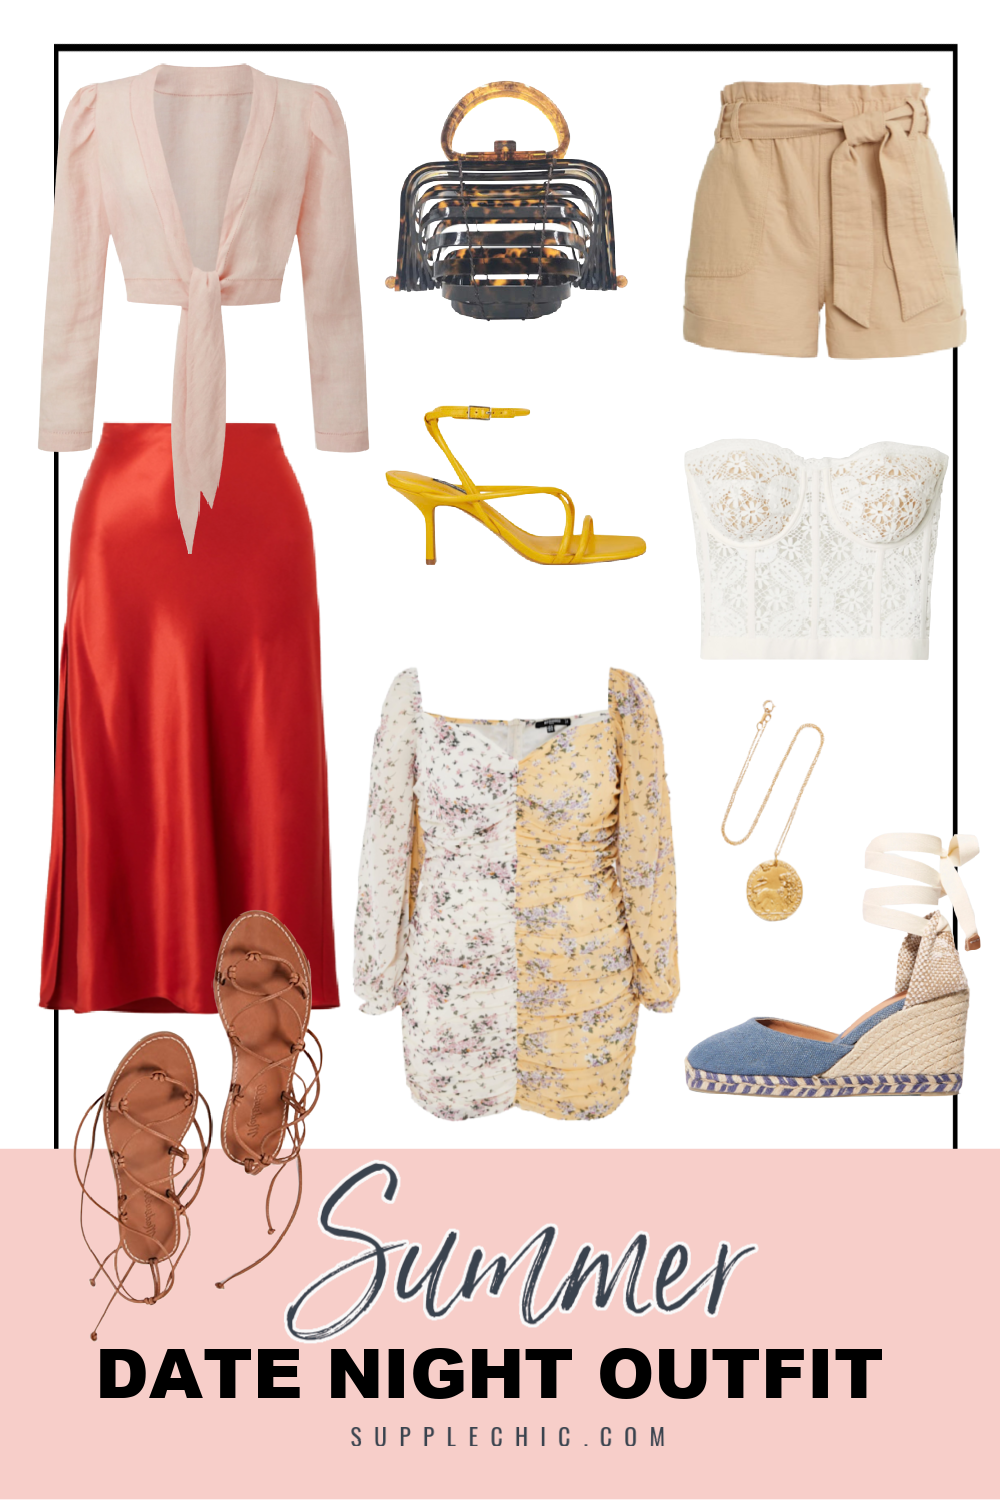 Summer date night outfit from supplechic a fashion and lifestyle blog based out of Baltimore